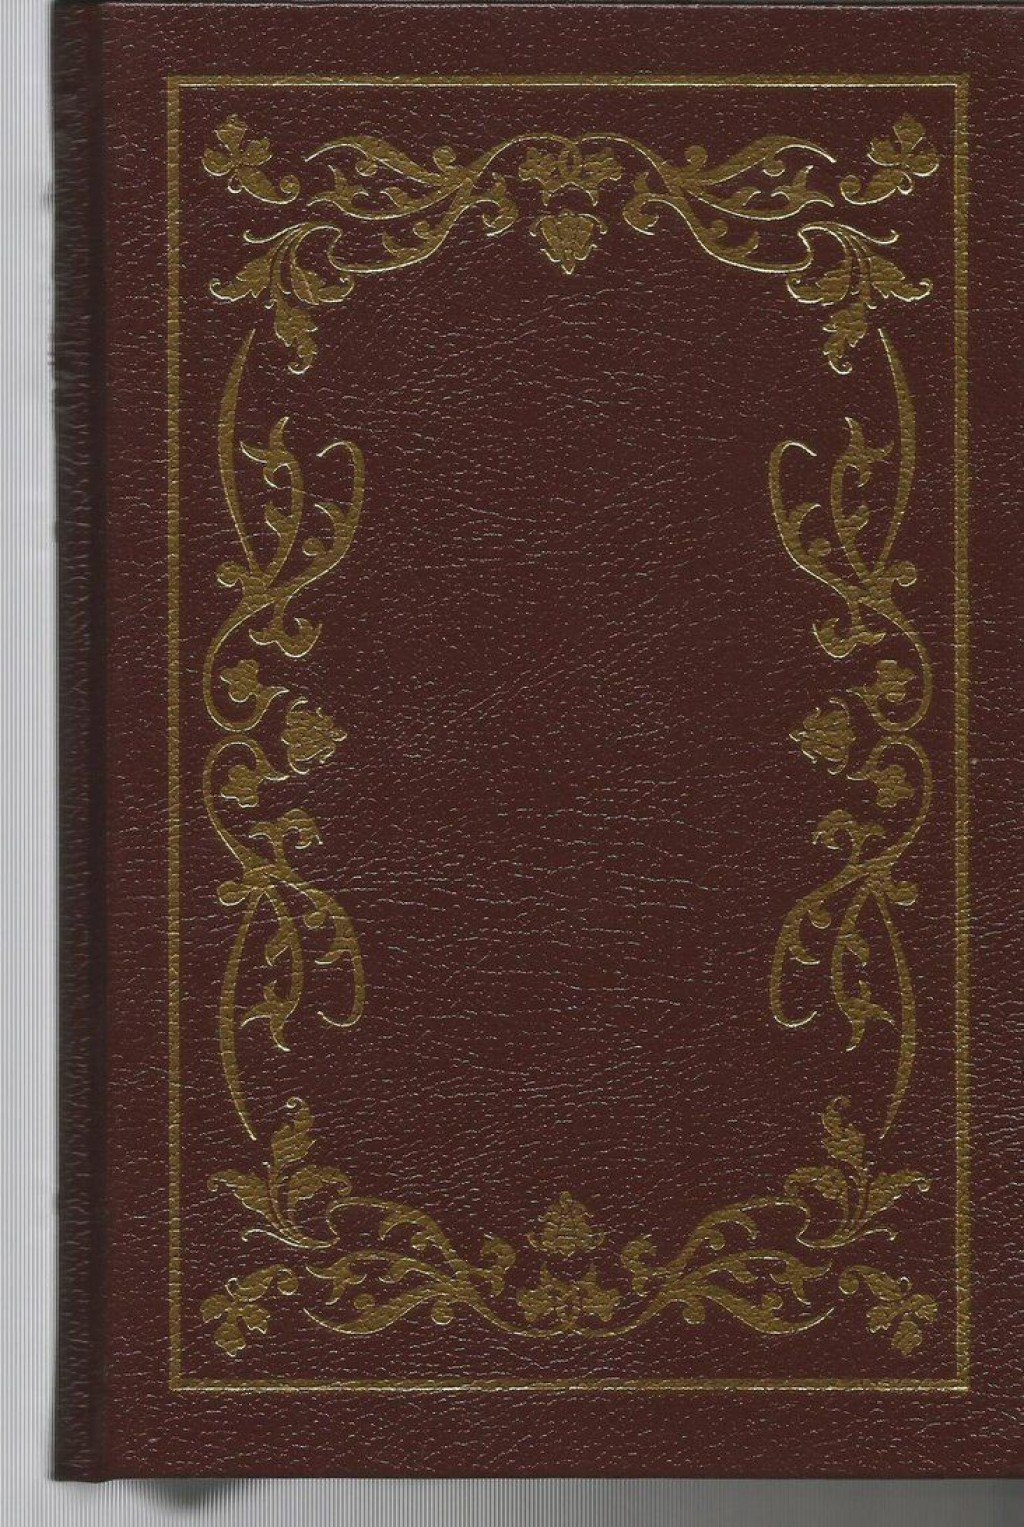 000 Magnificent Old Book Cover Template Picture  Fashioned WordLarge